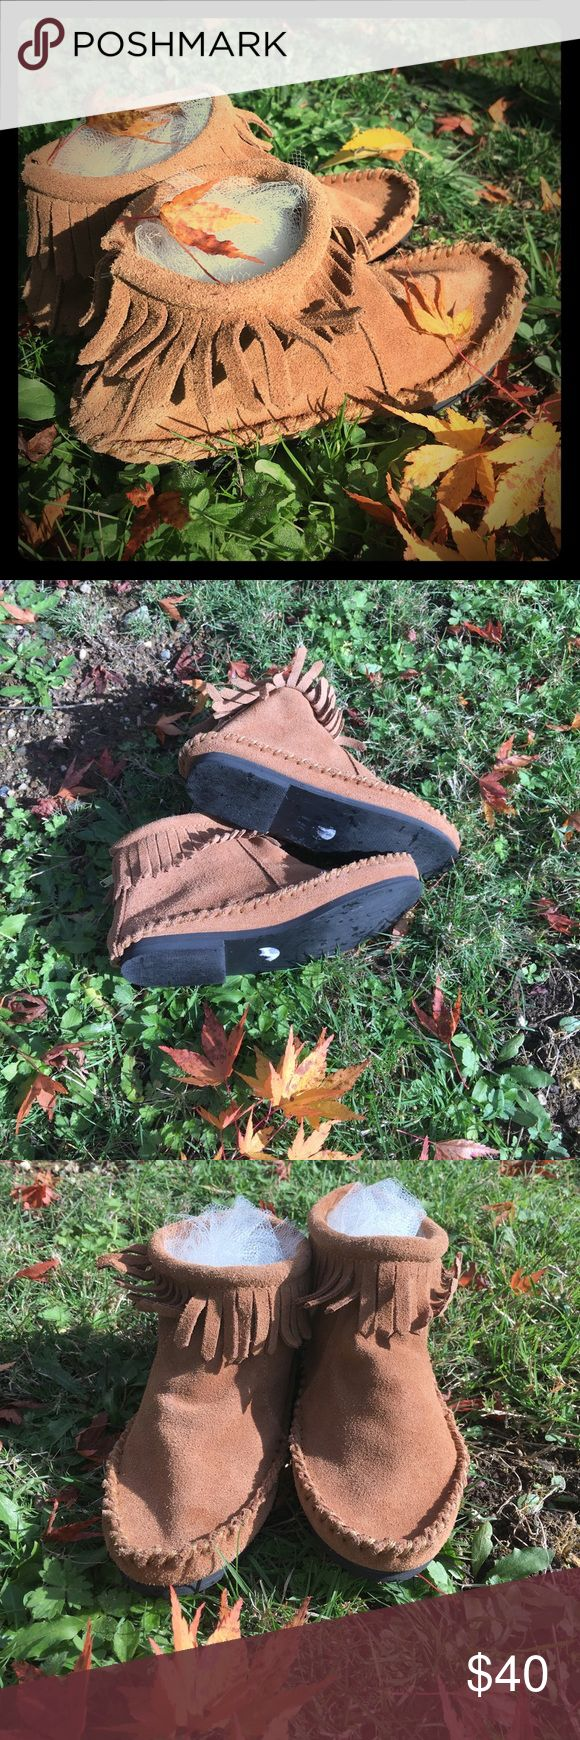 Girls Mini Boden Moccasins🍁🍂💫 Cute little girls moccasins. Good used condition. Nordstrom Mini Boden brand, genuine brown leather/suede. Euro size 29, which is 11.5 US. Mini Boden Shoes Moccasins